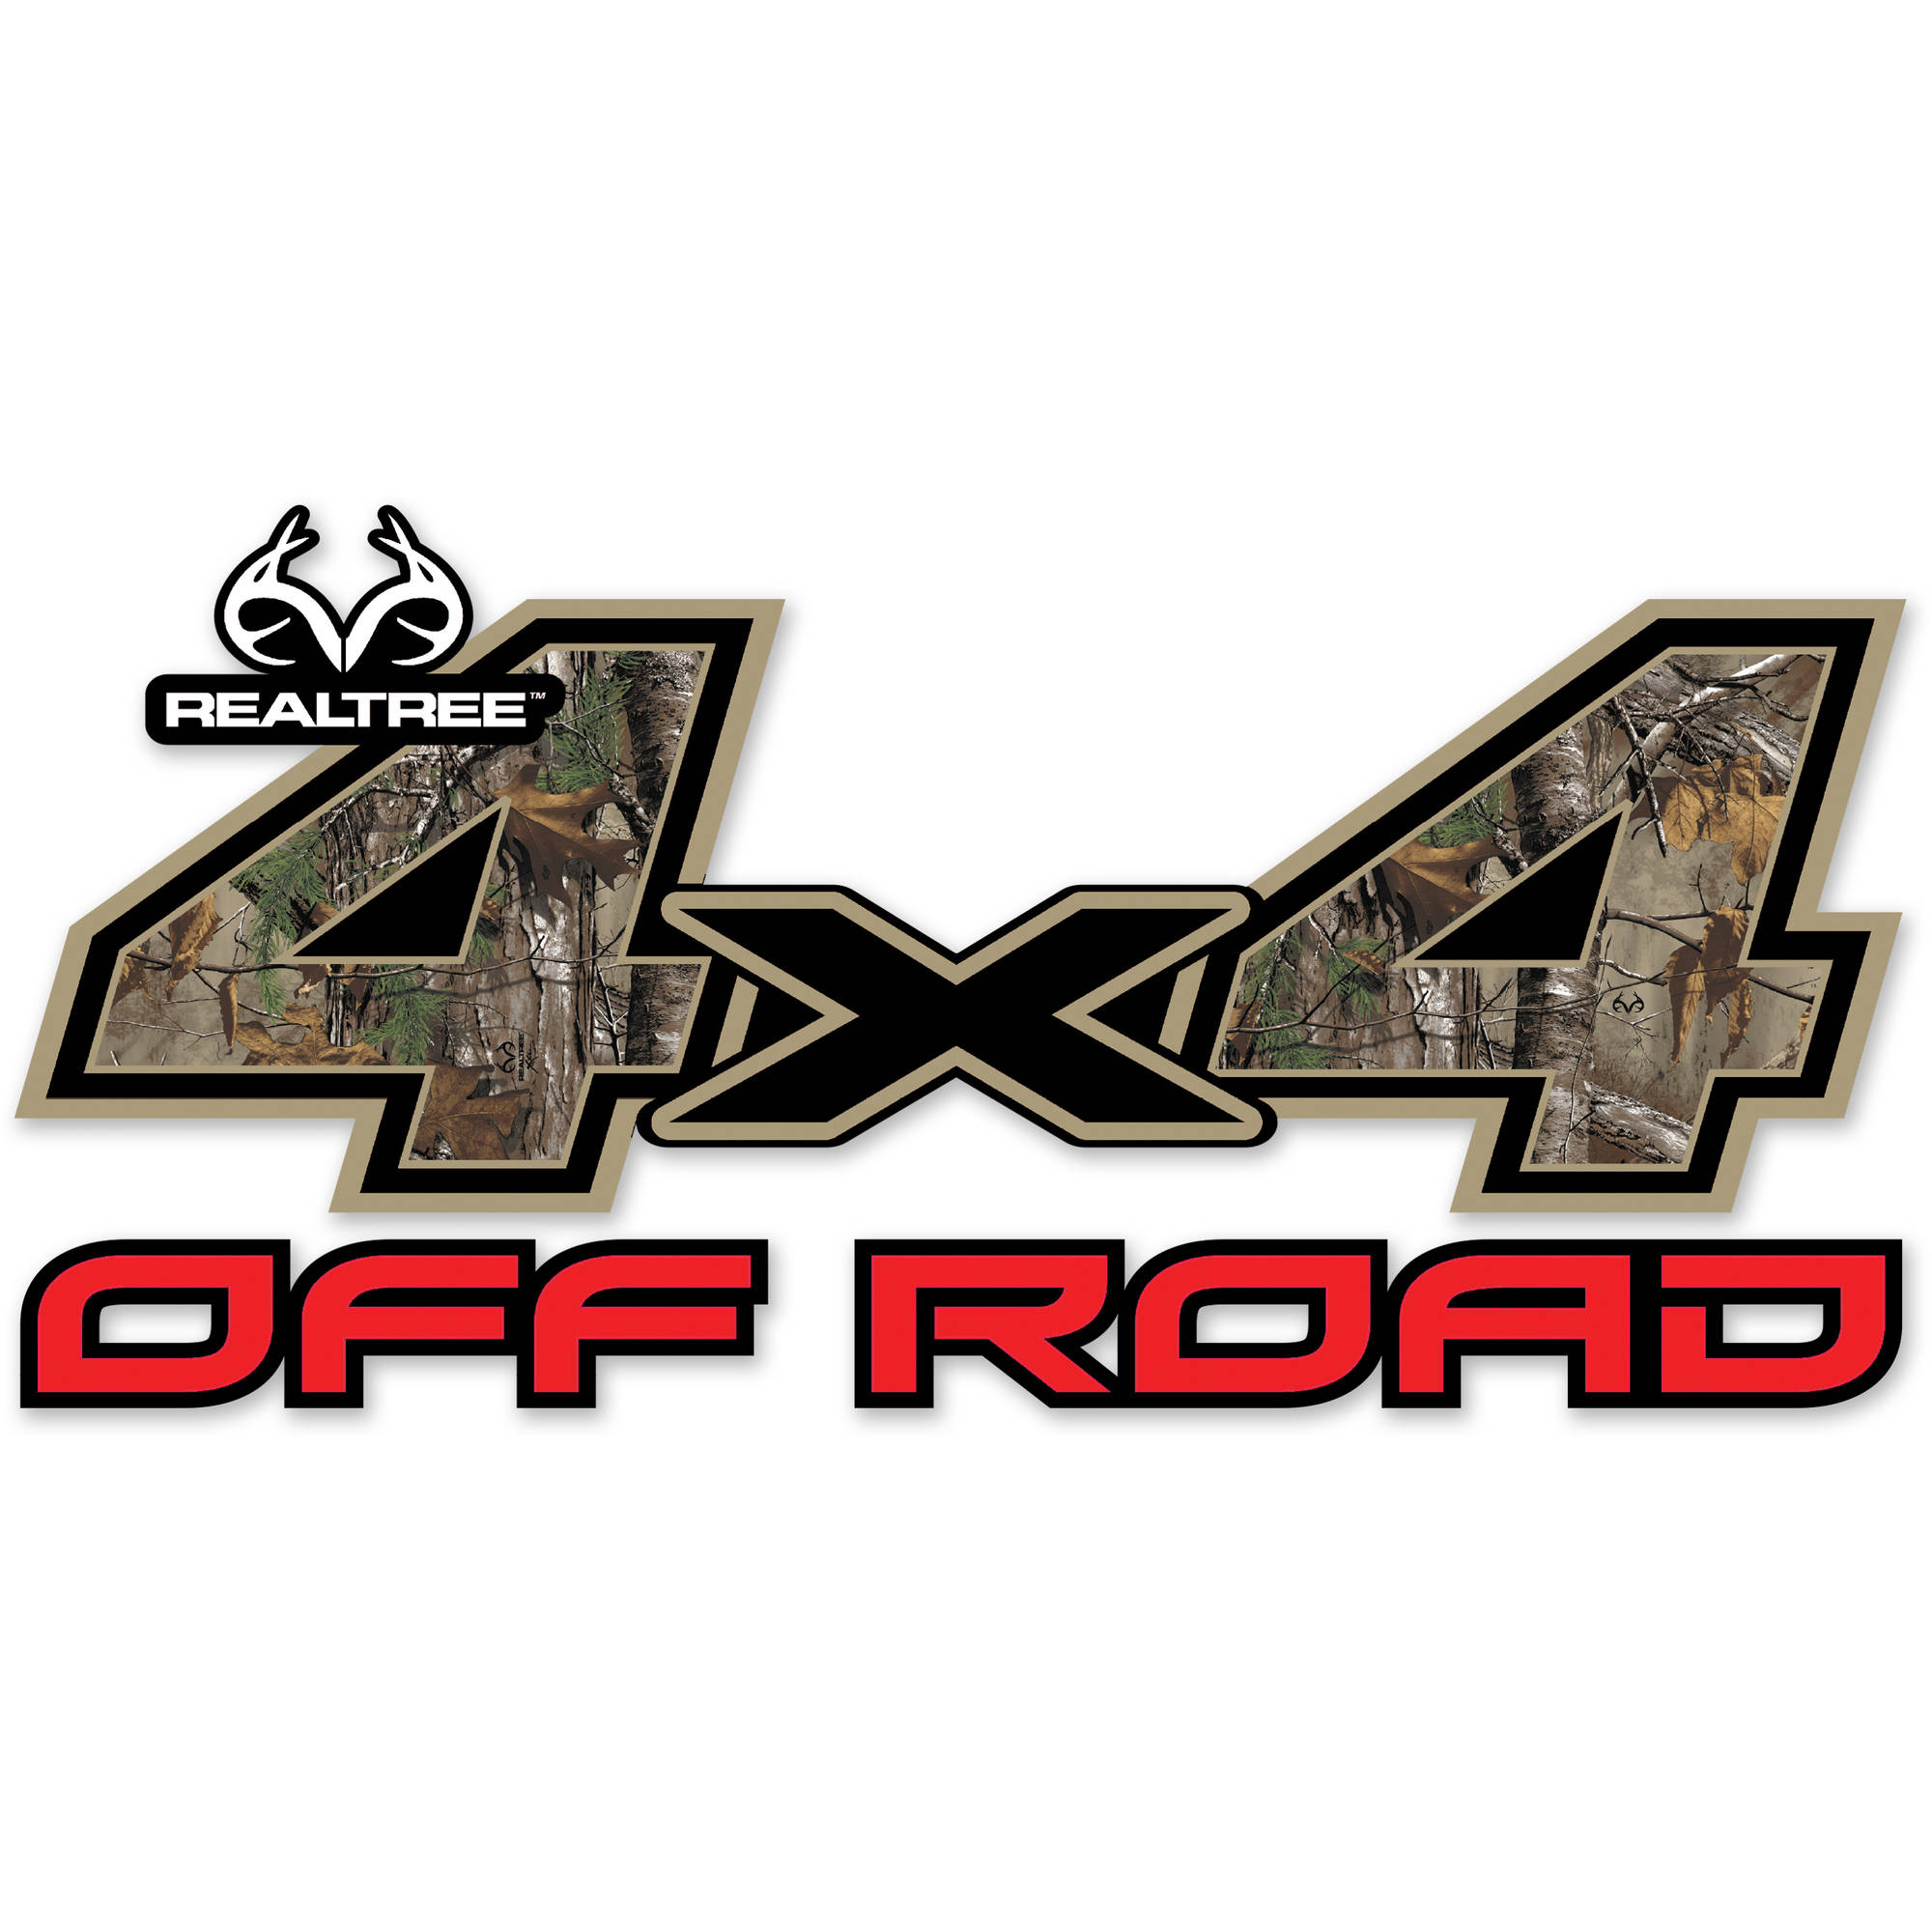 "Realtree 4X4 Off Road Contour-Cut Decal Includes Two 6.25"" x 13.25"" Decals"